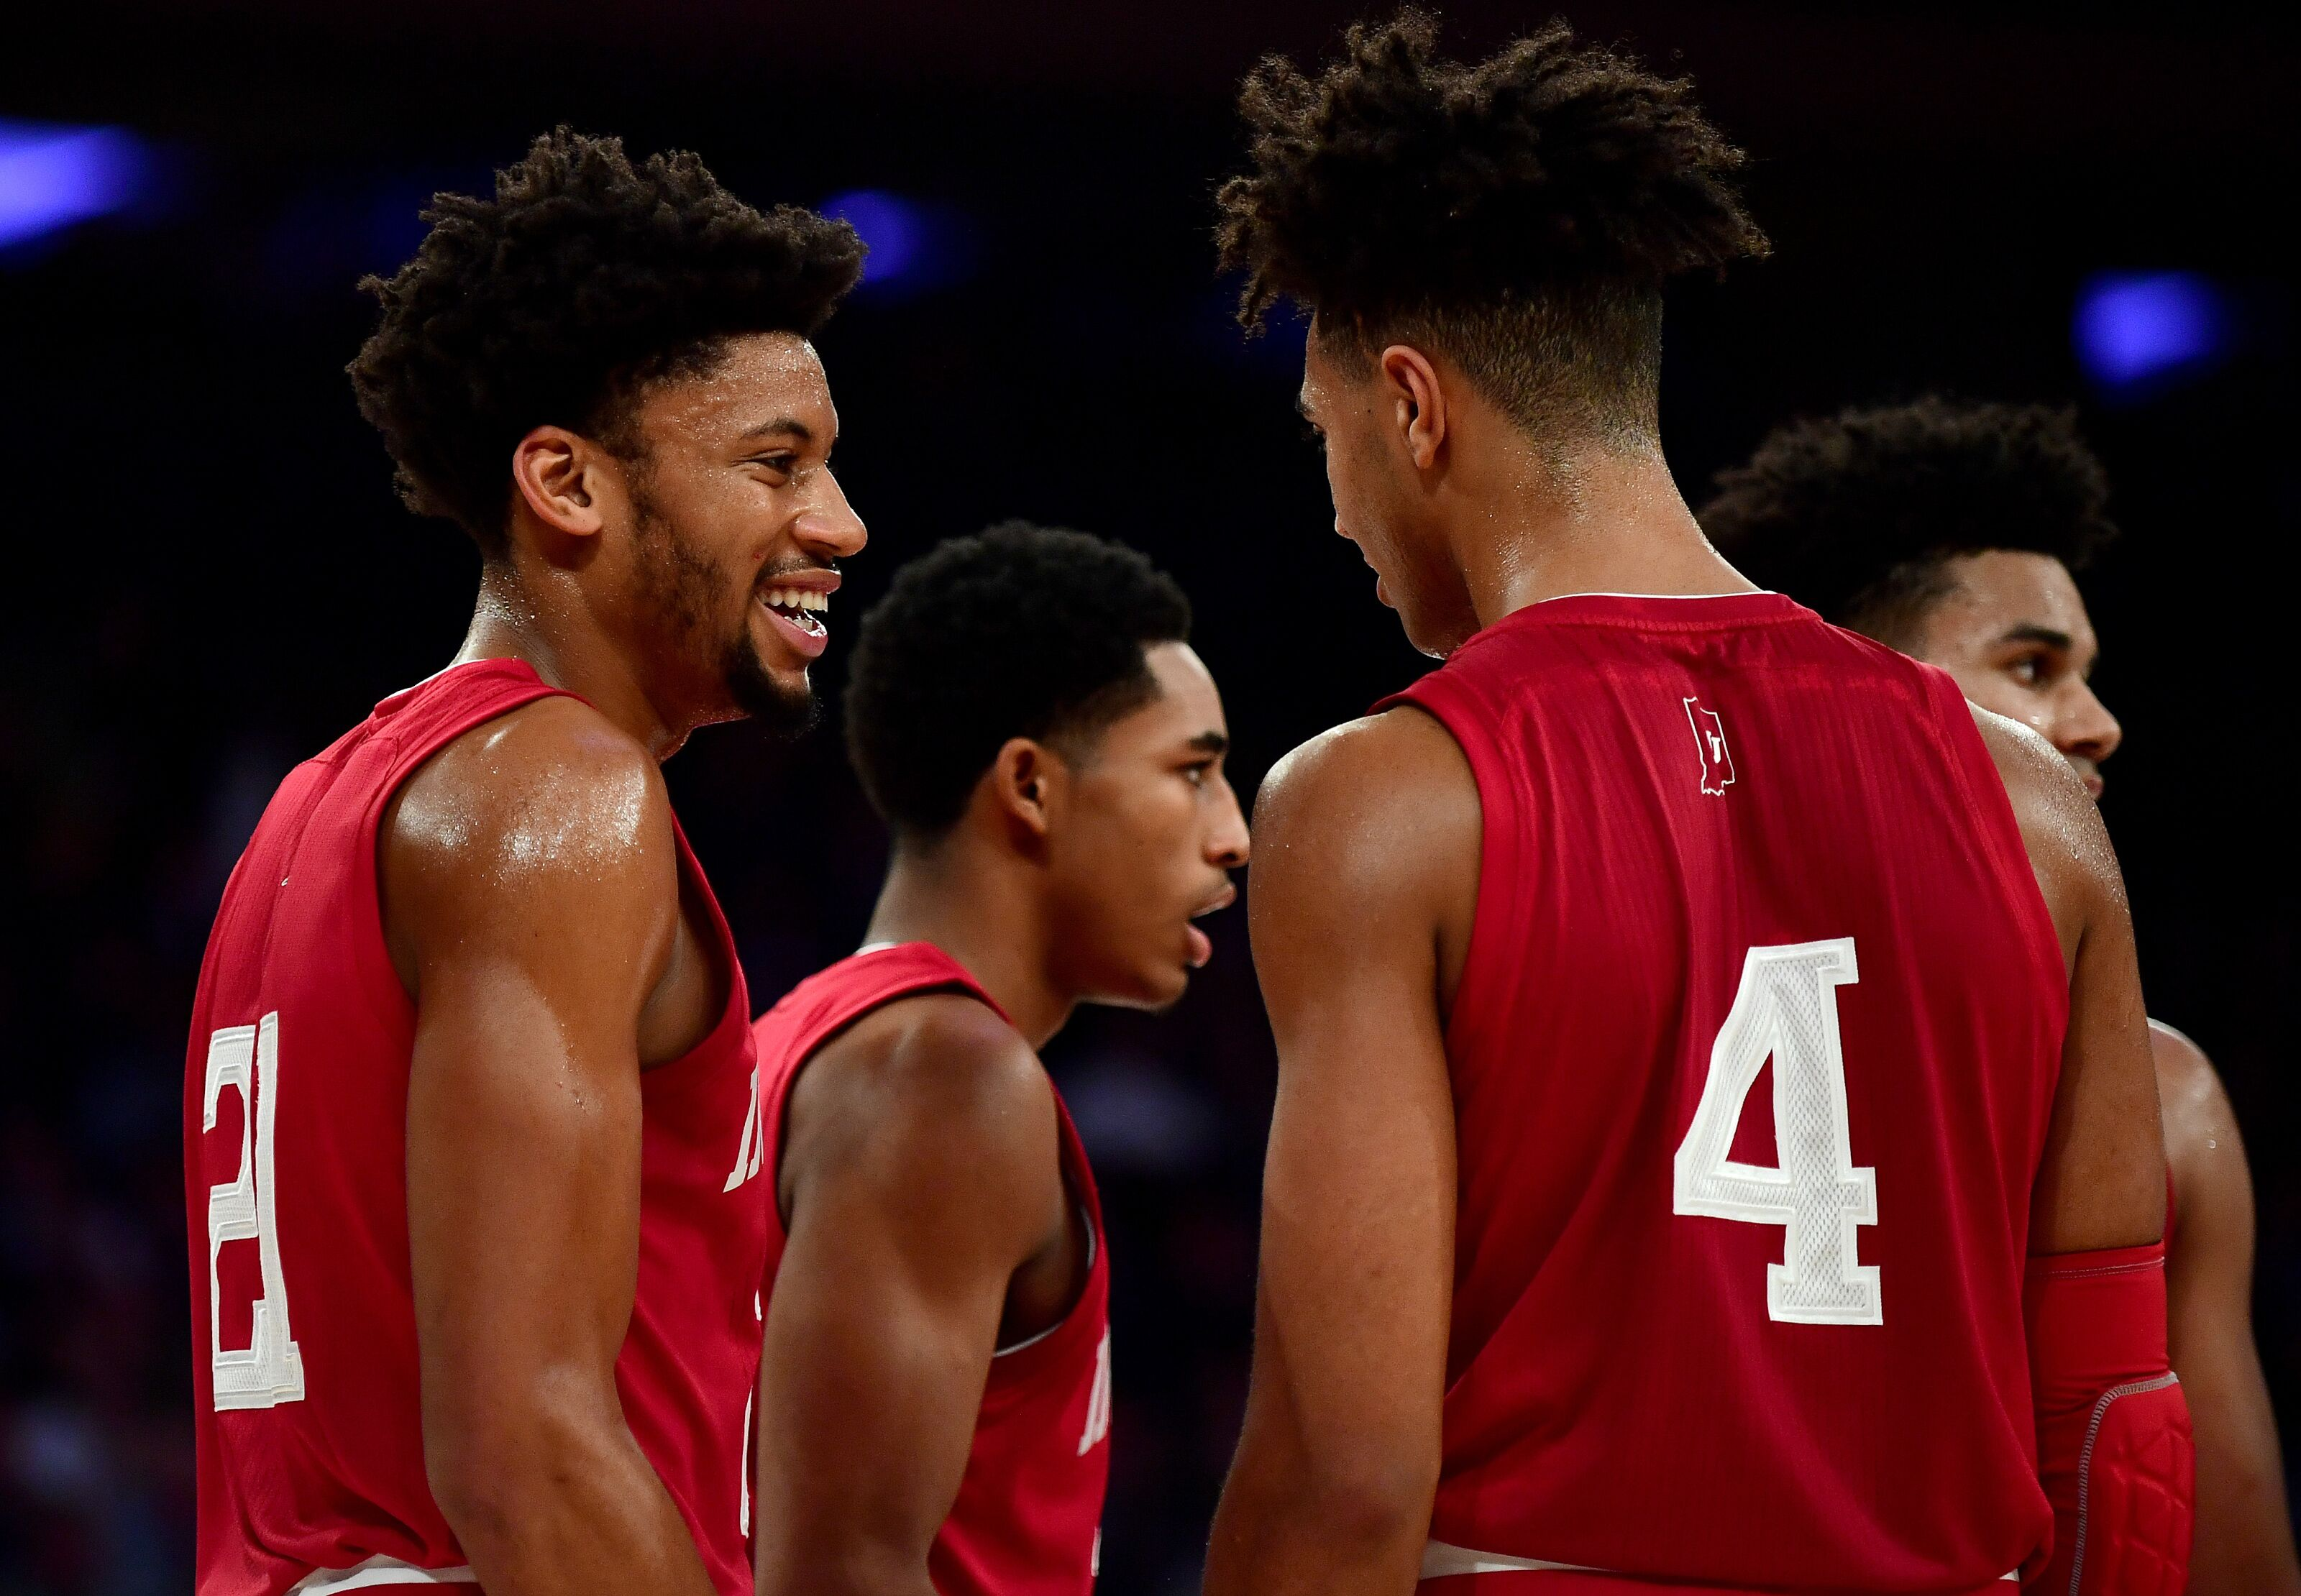 Indiana Basketball: Is tonight a must win for Hoosiers?